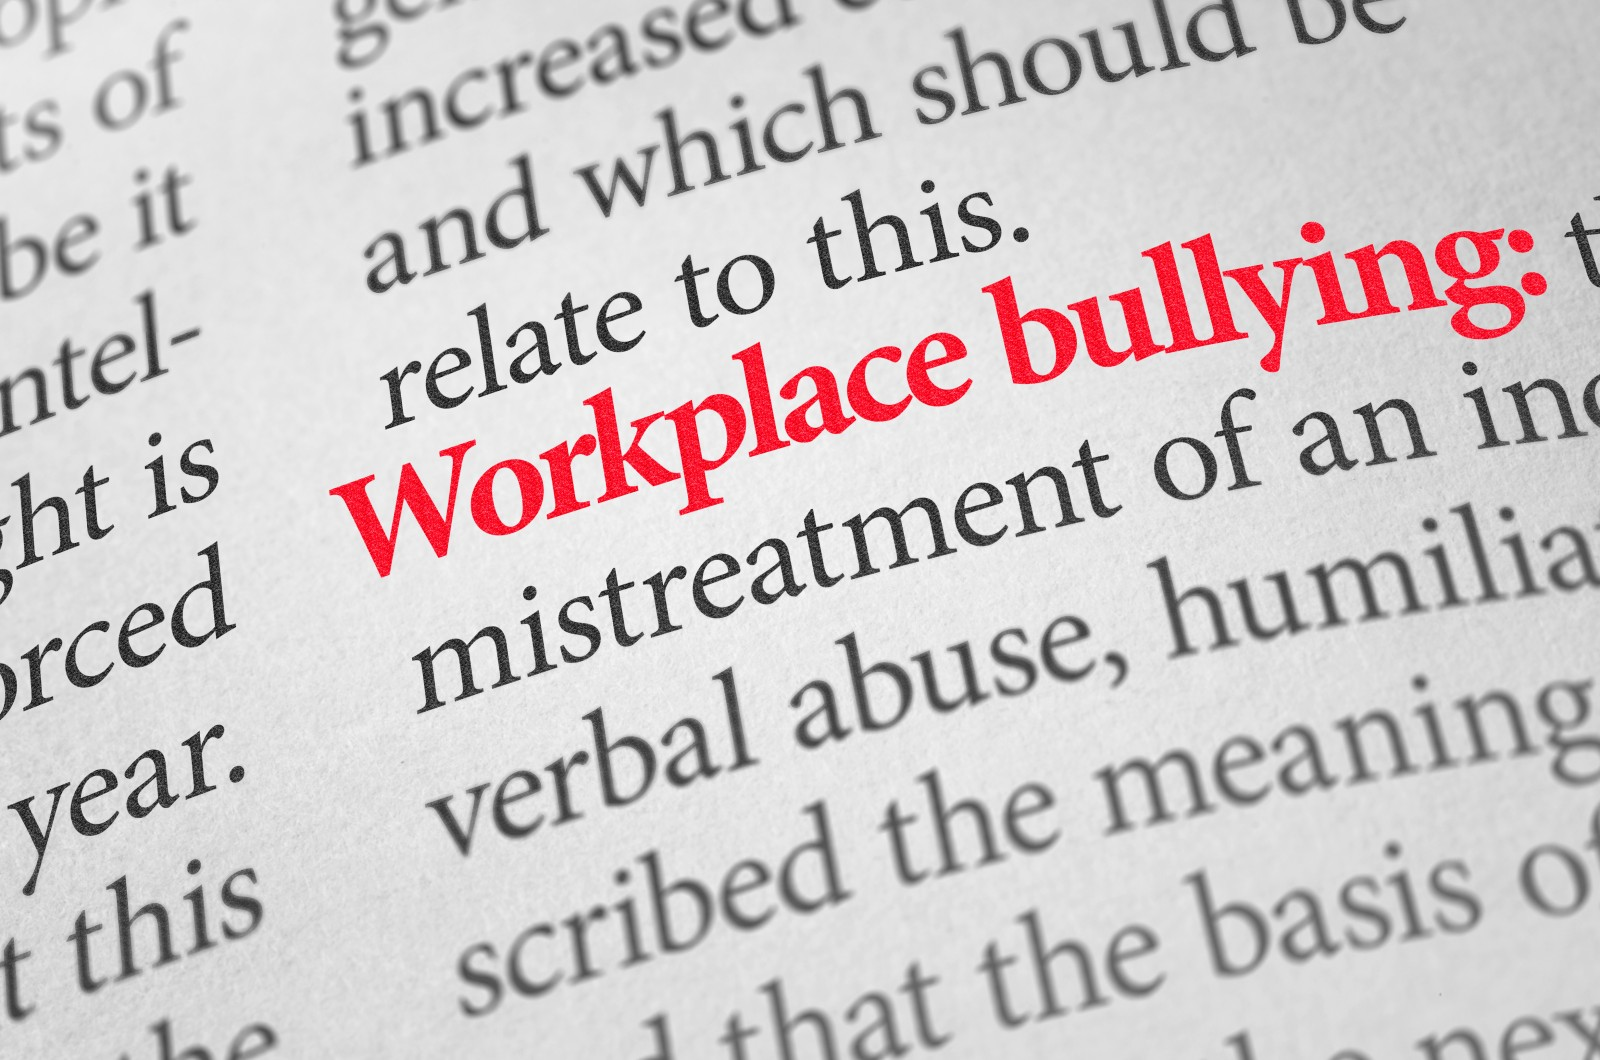 brock study explores gender differences in workplace bullying